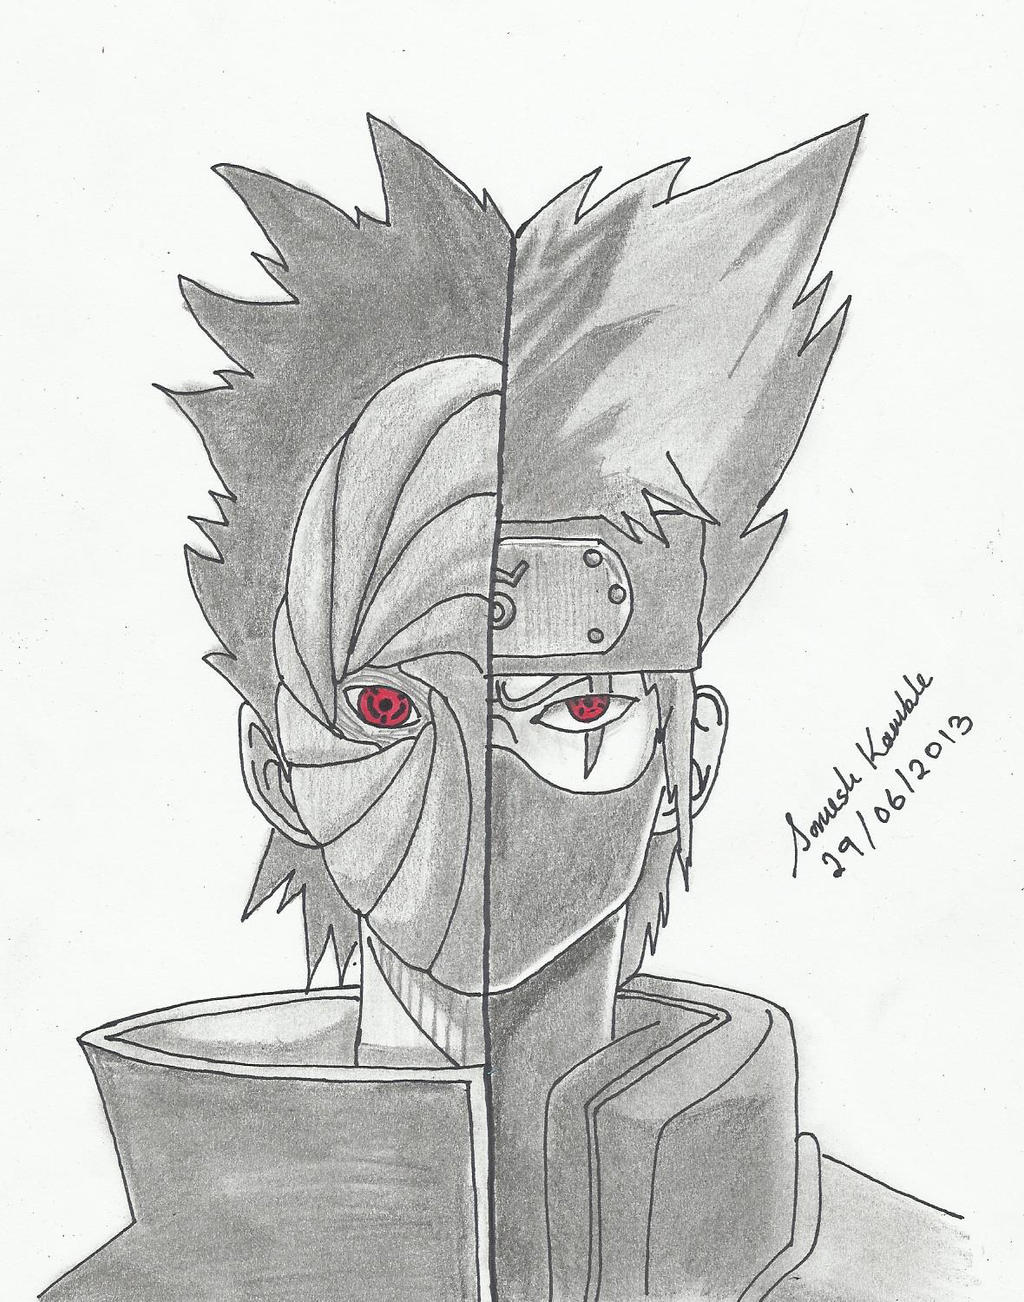 kakashi obito_by somesh kamble by somesh31 kakashi obito_by somesh kamble by somesh31